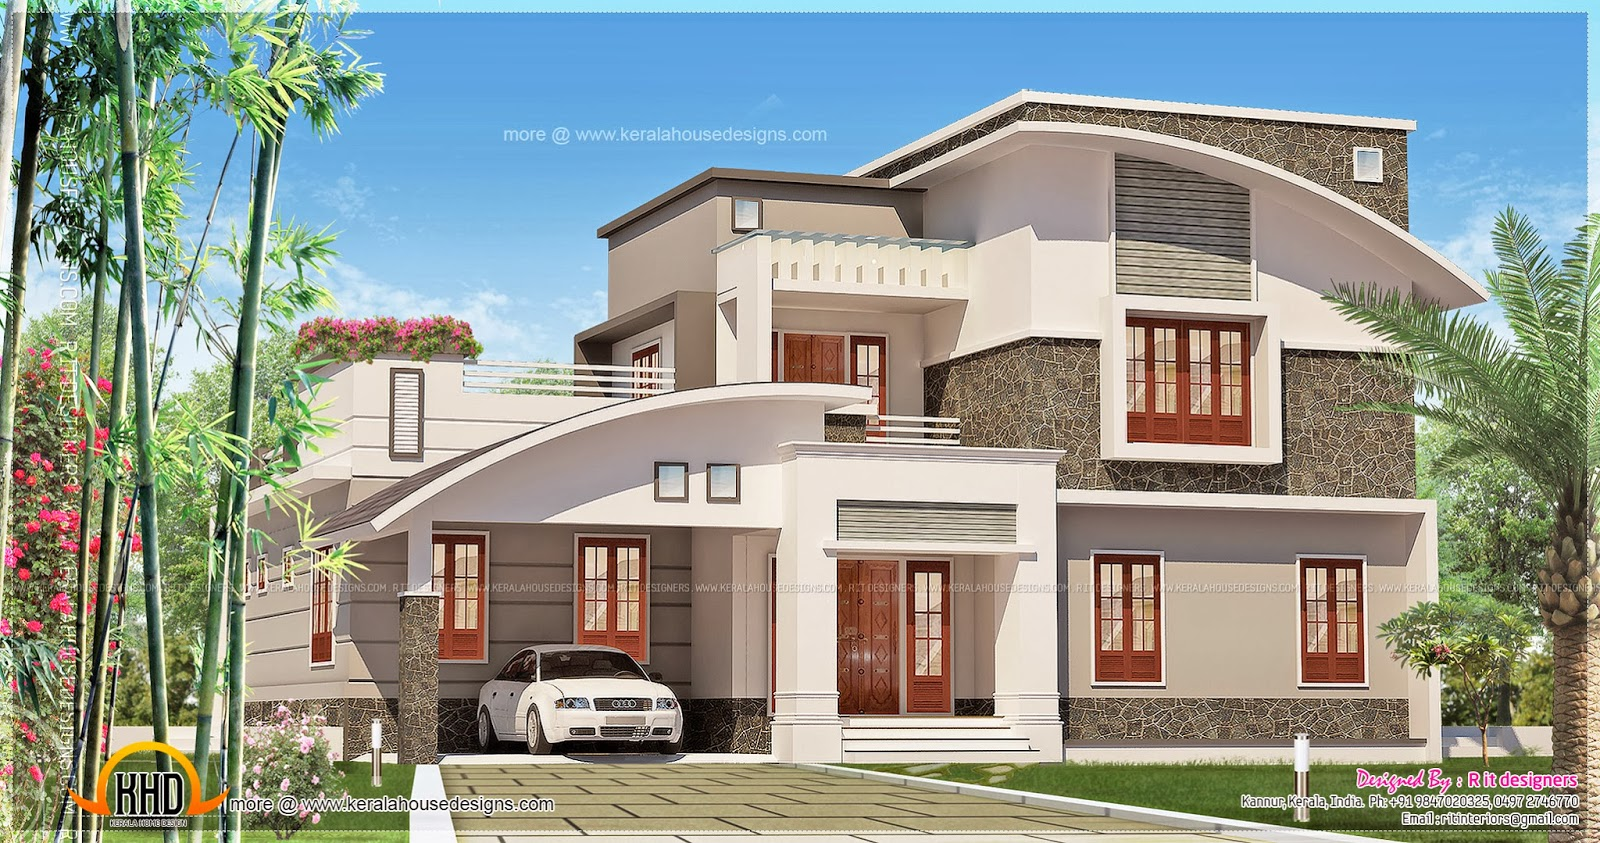 3 bedroom contemporary mix house exterior kerala home for Homes models and plans